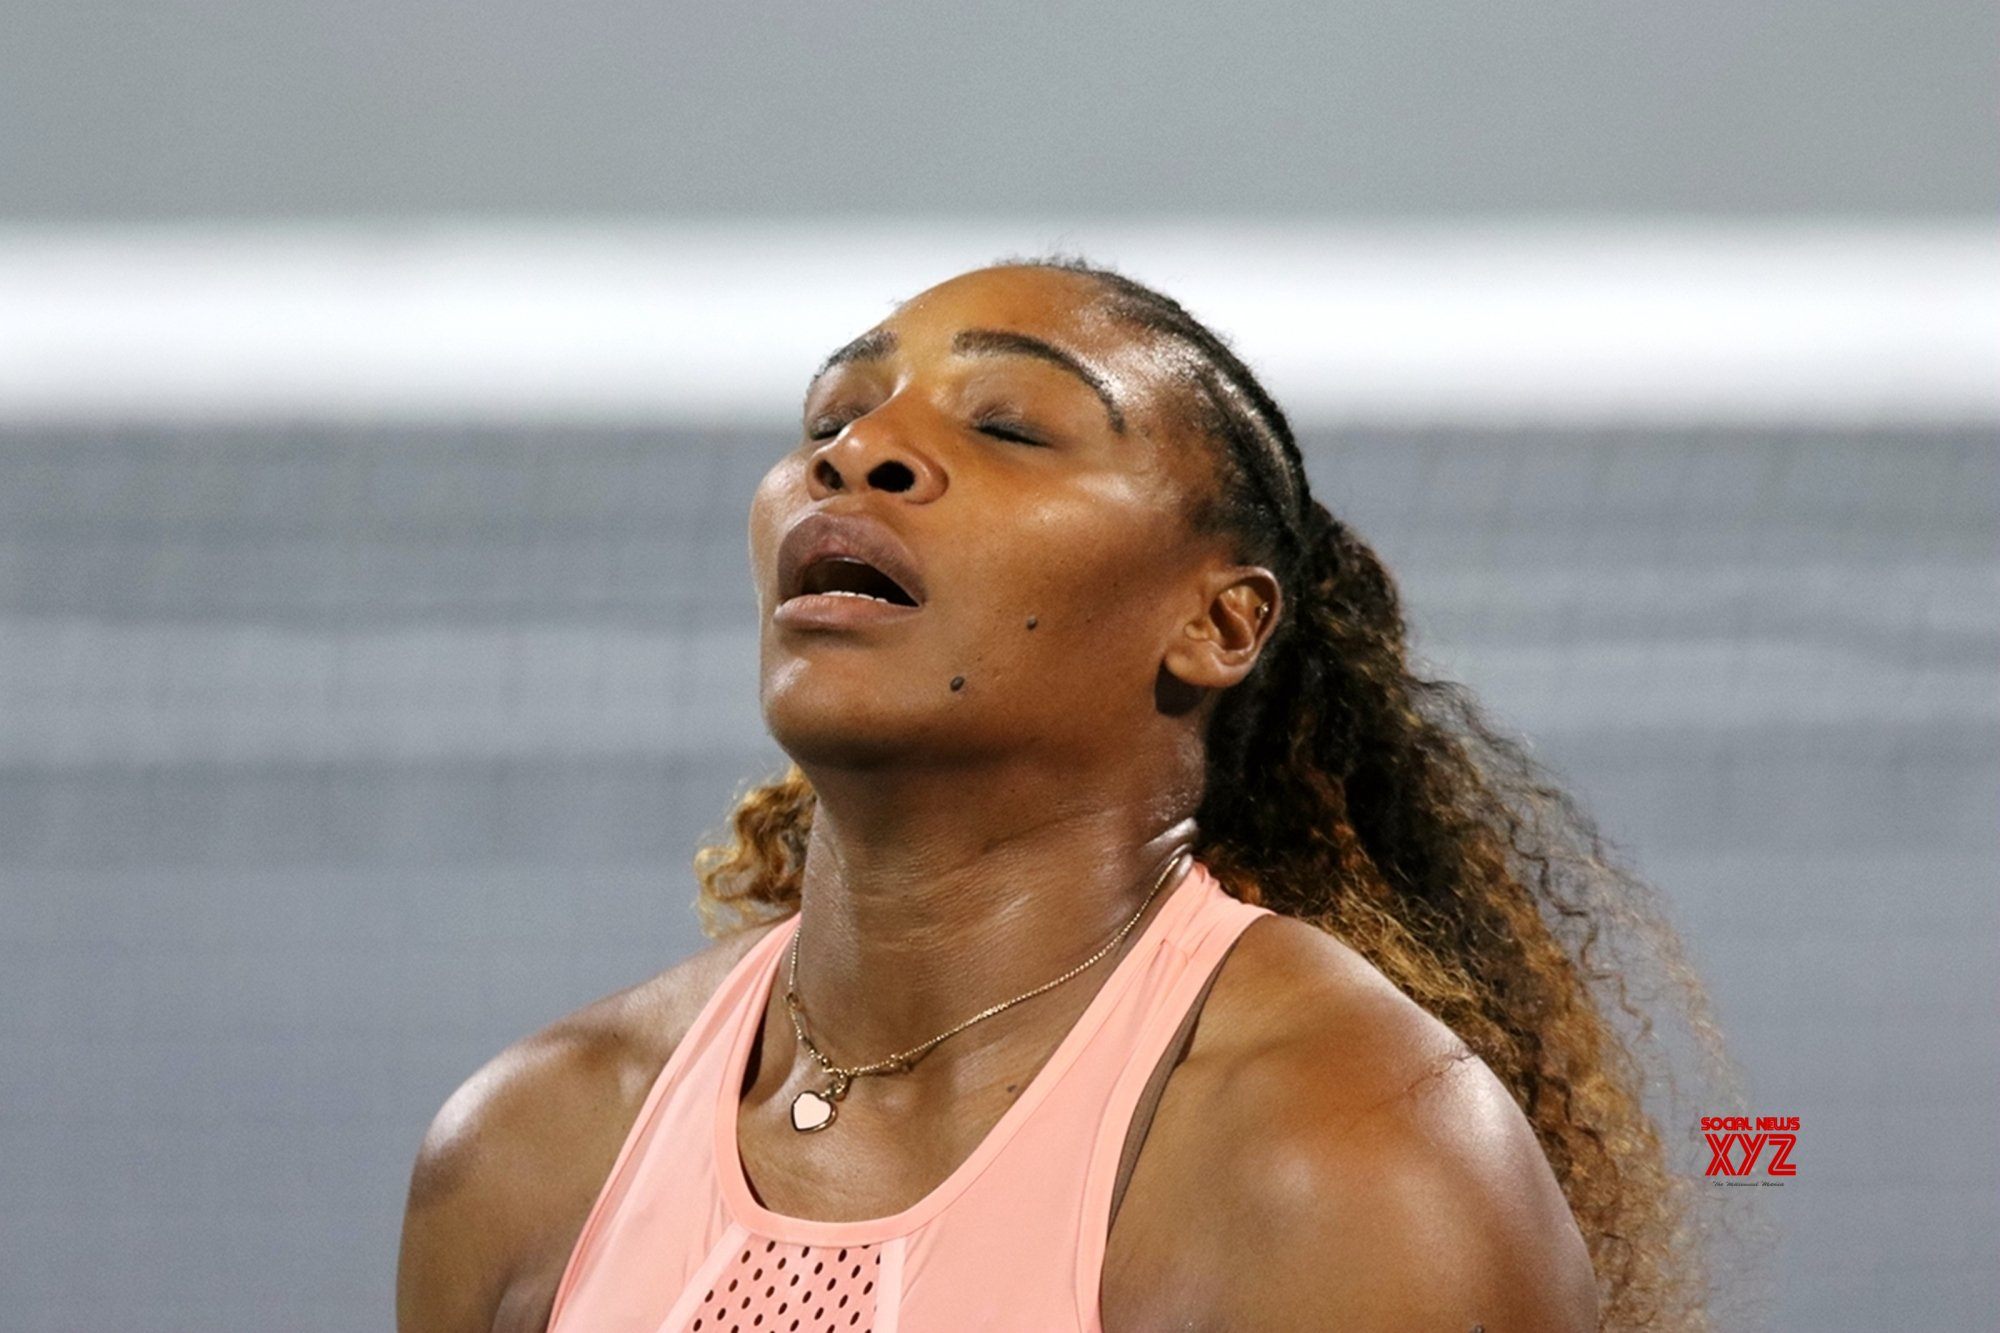 Serena Williams wants to focus on 'bigger and better things' after comeback